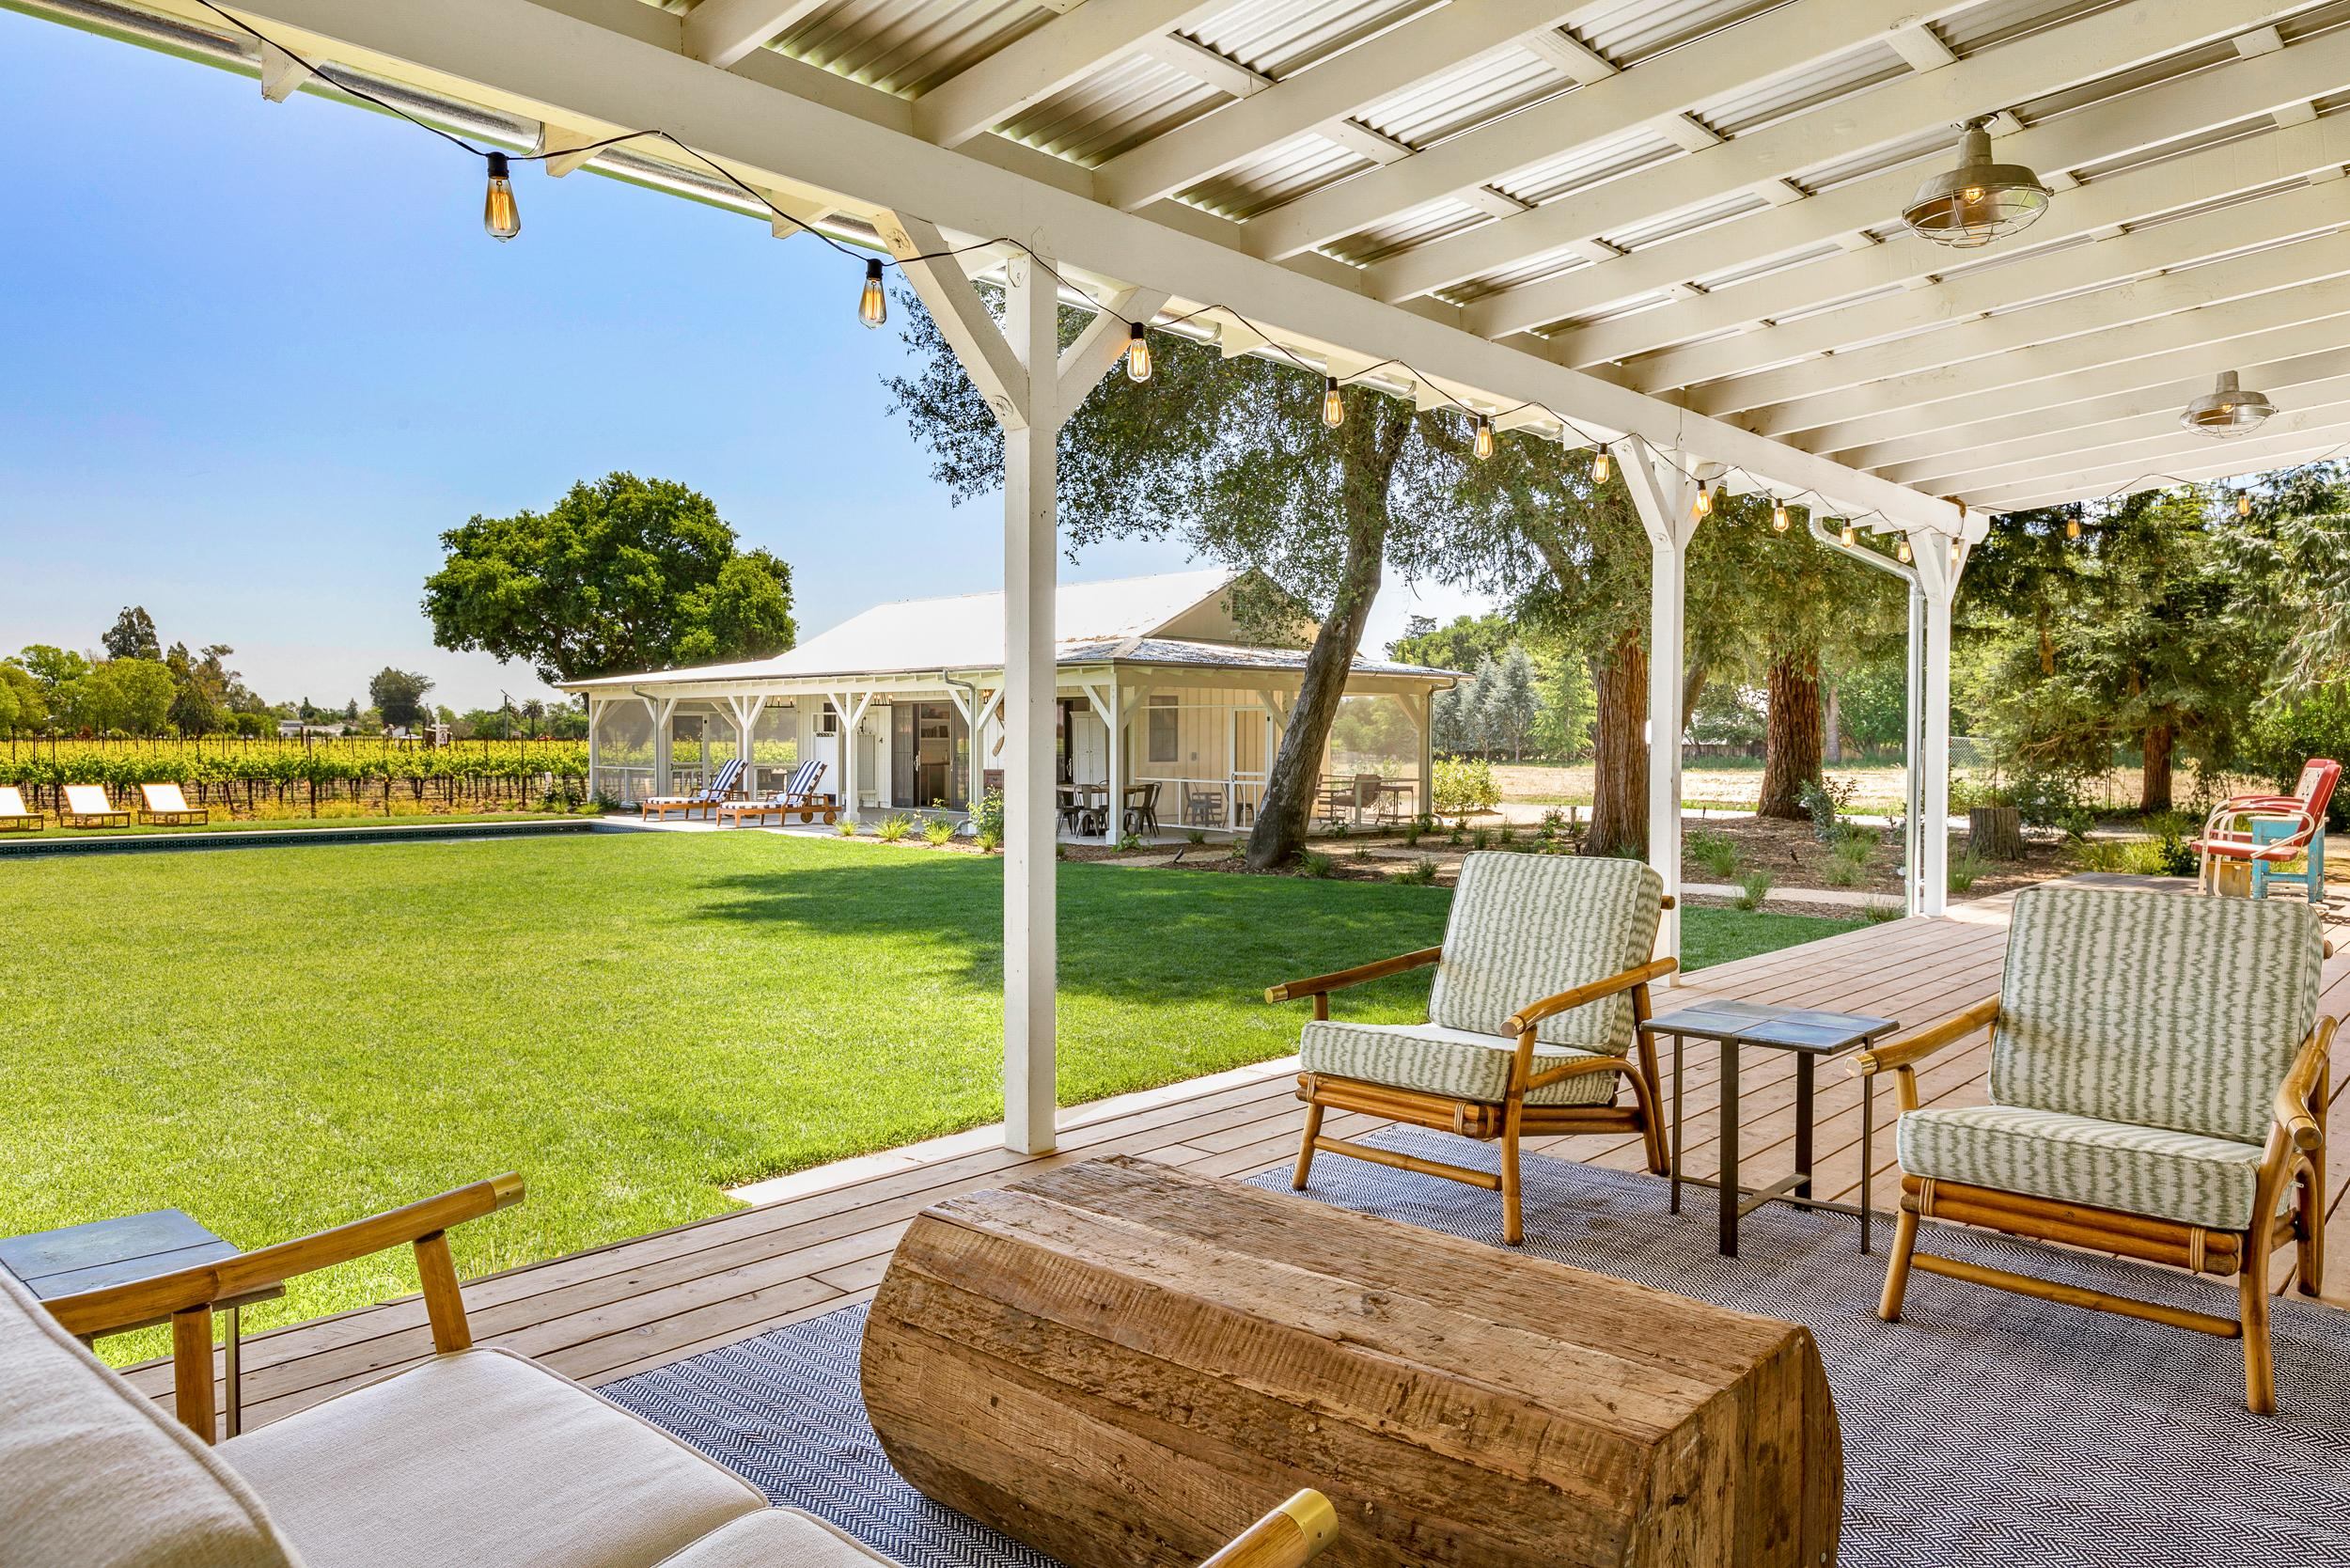 Kick back in the outdoor living area with cozy seating and rugs.